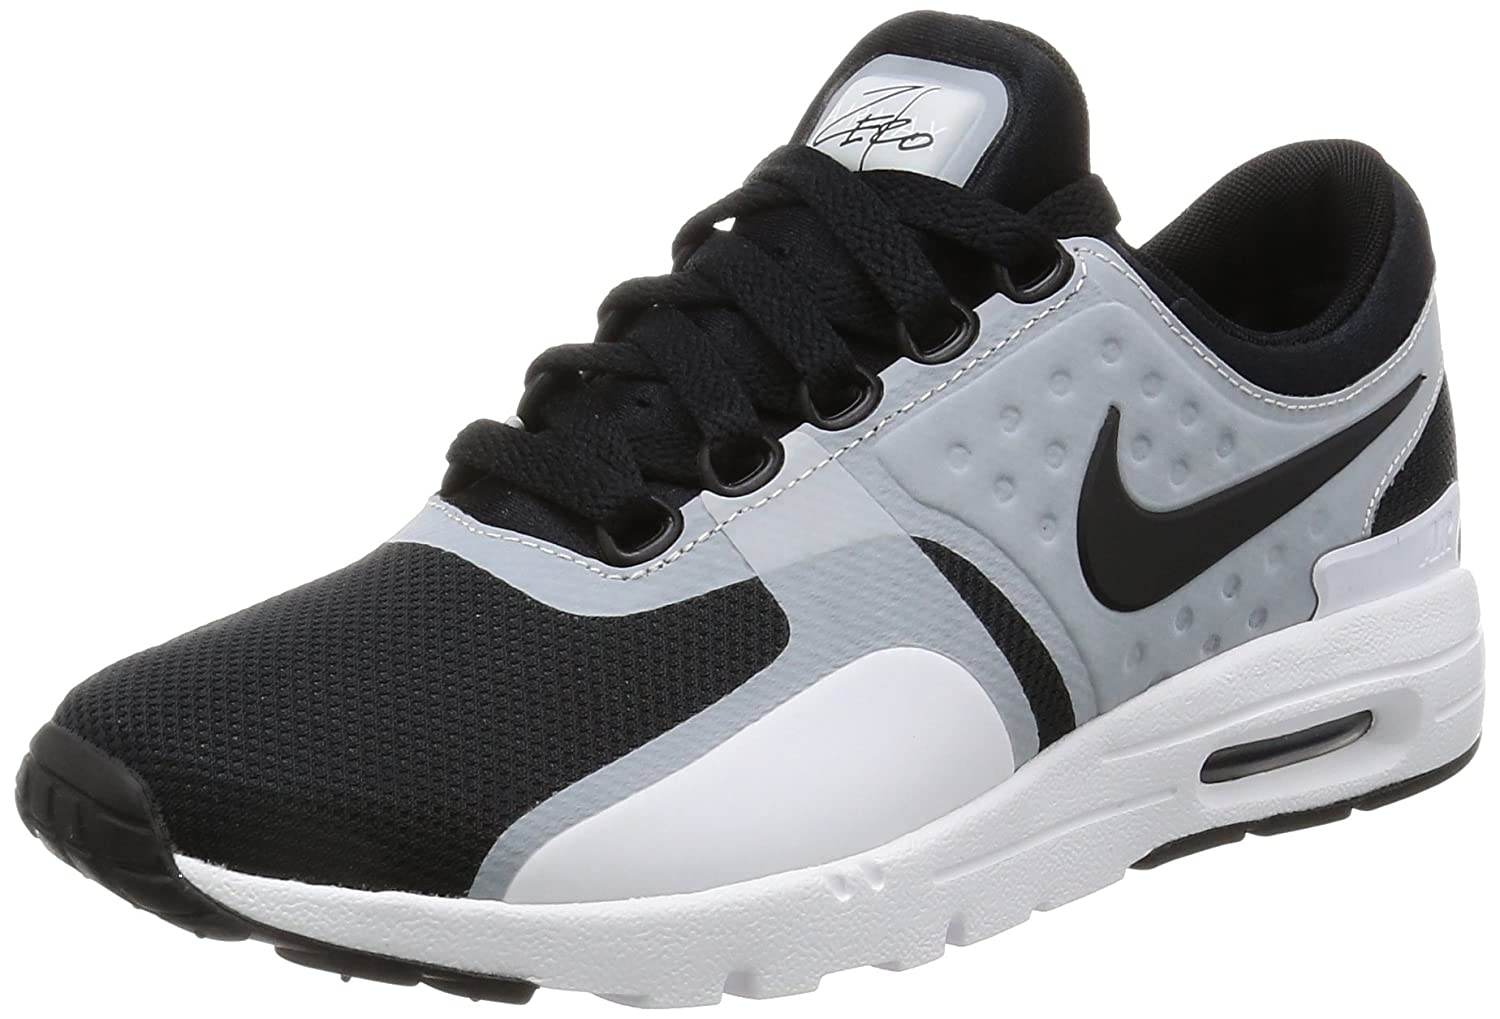 NIKE Women's Air Max Zero Running Shoe B01M63RZRE 6 B(M) US|White/Black